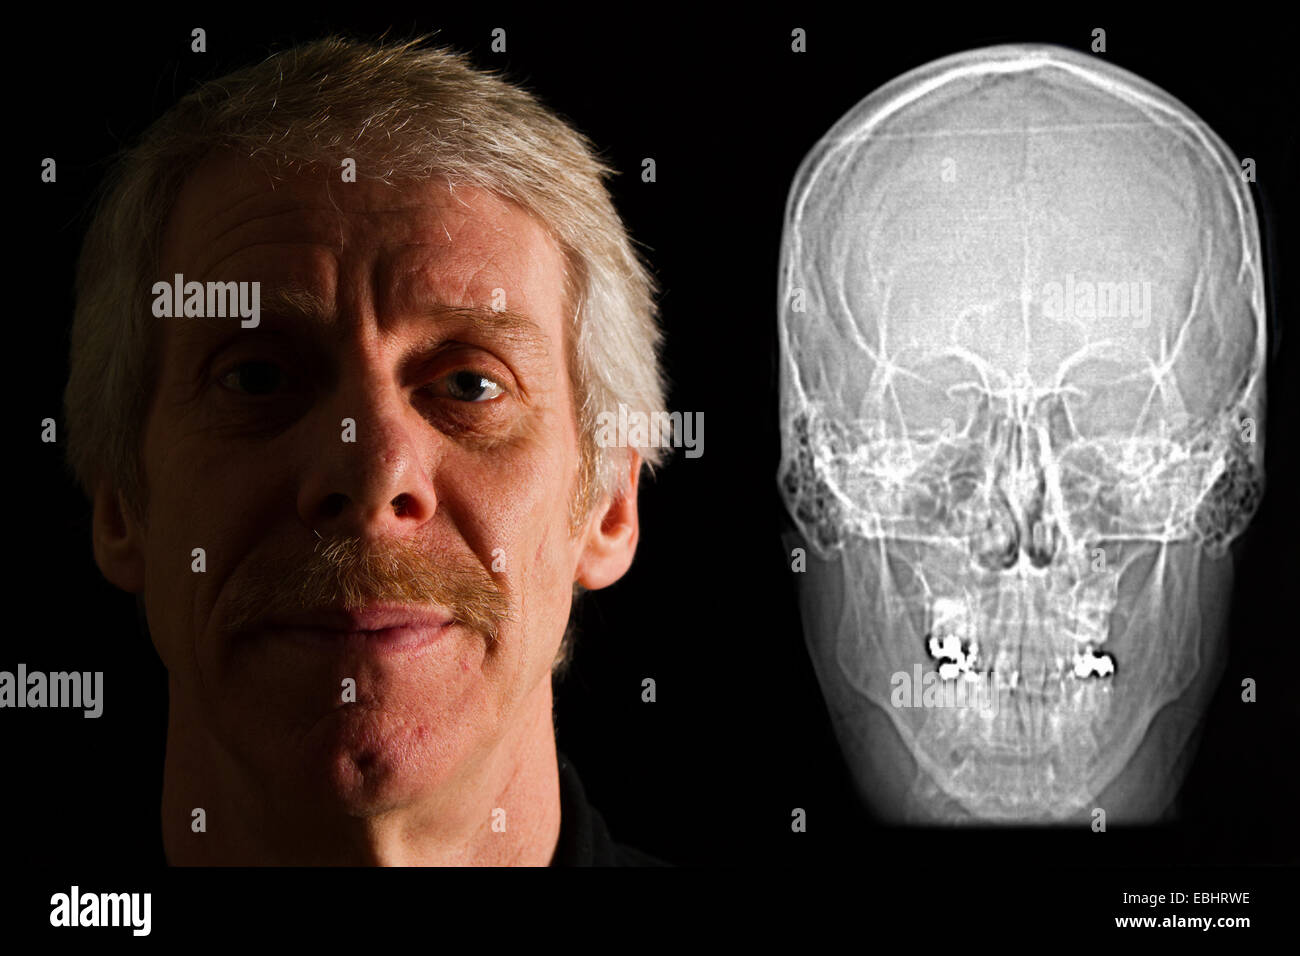 Man beside his CT (Computed Tomography) scan of his head. - Stock Image